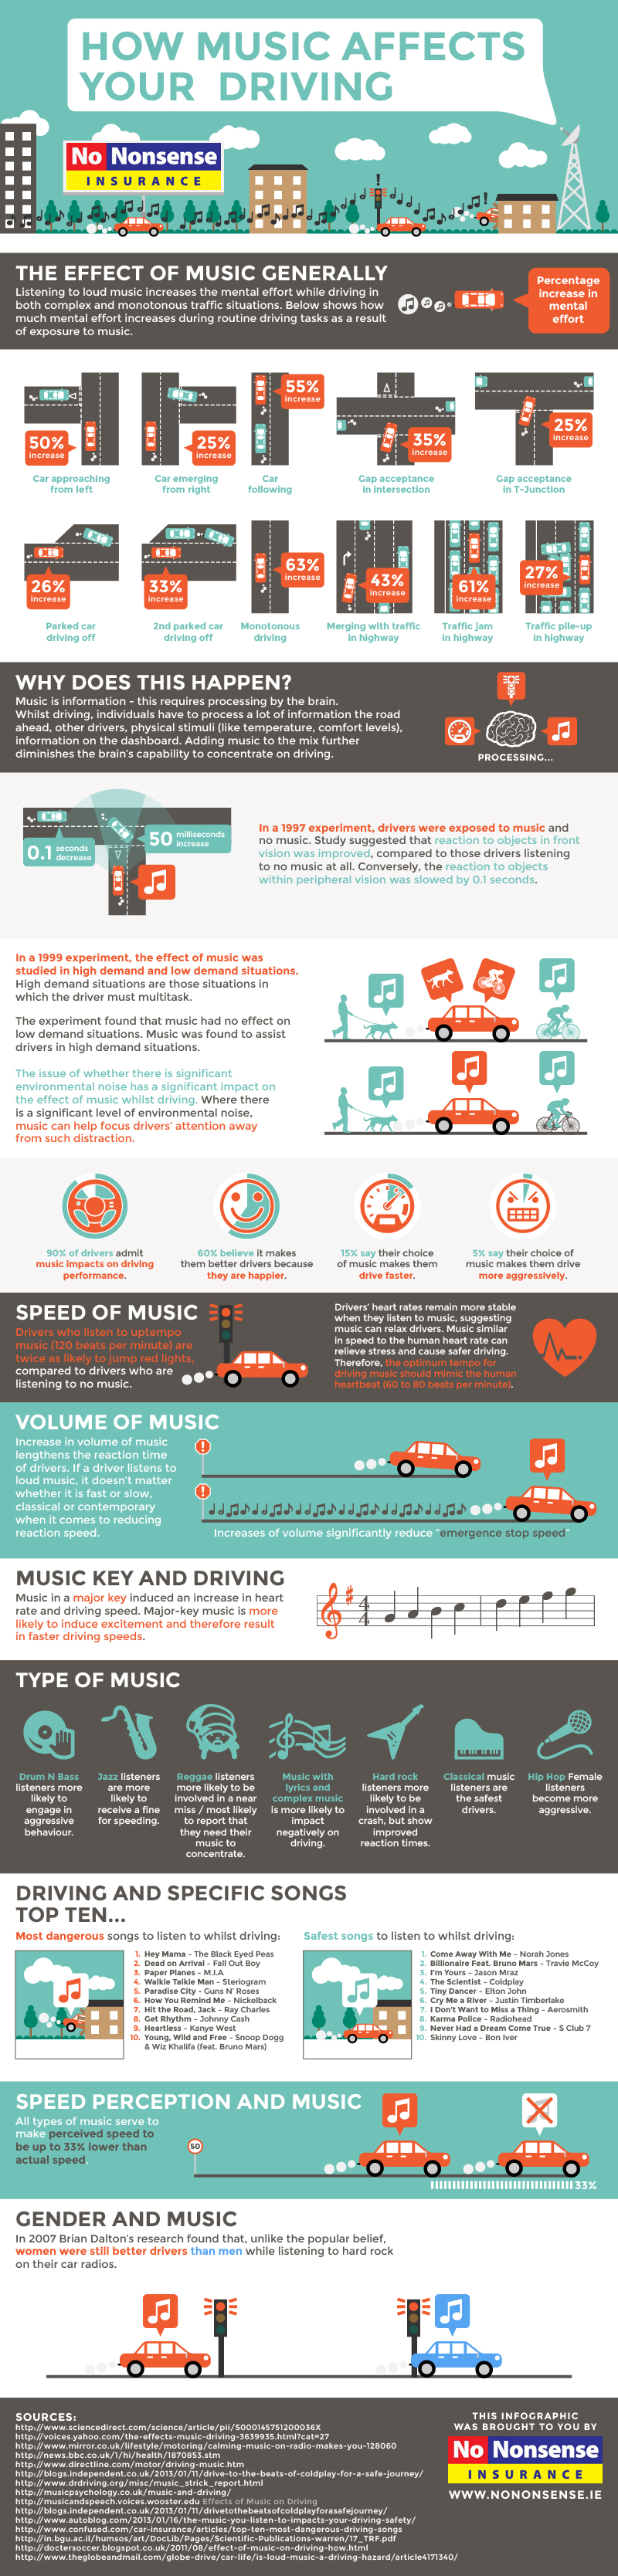 How Music Affects Your Driving